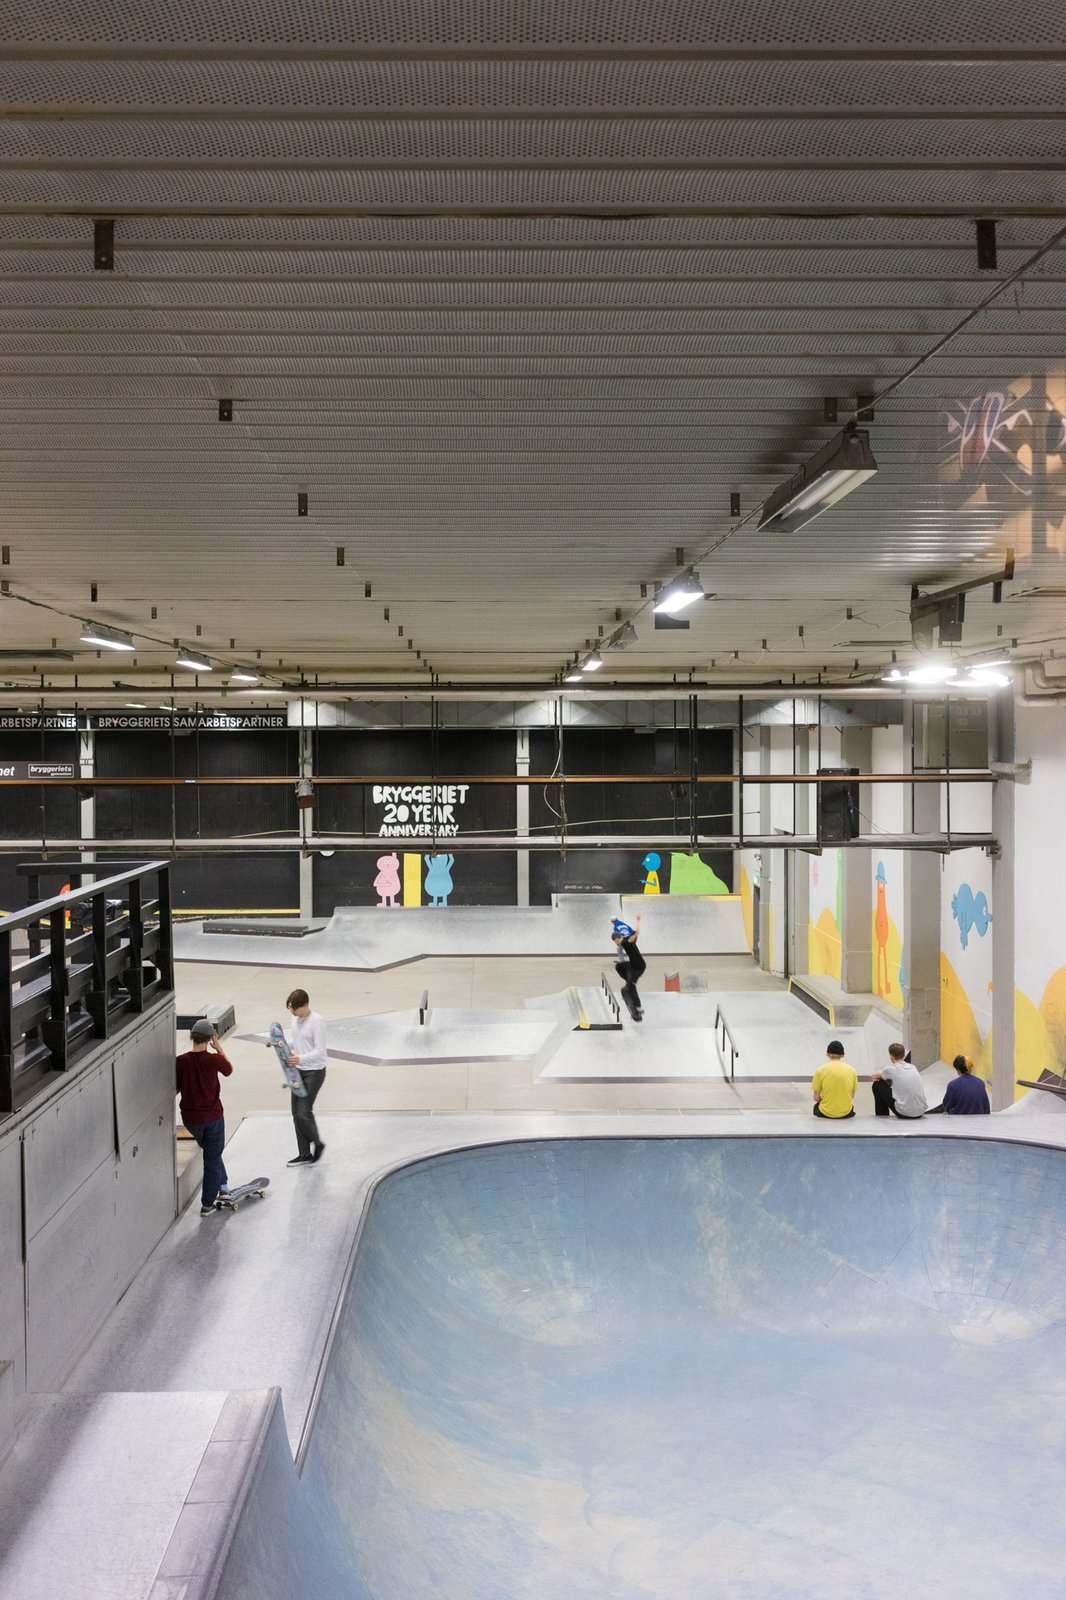 Built in 1998, Bryggeriets skate park is located at the heart of the school. It gives students instant access to a landmark facility where they can practice skateboarding.